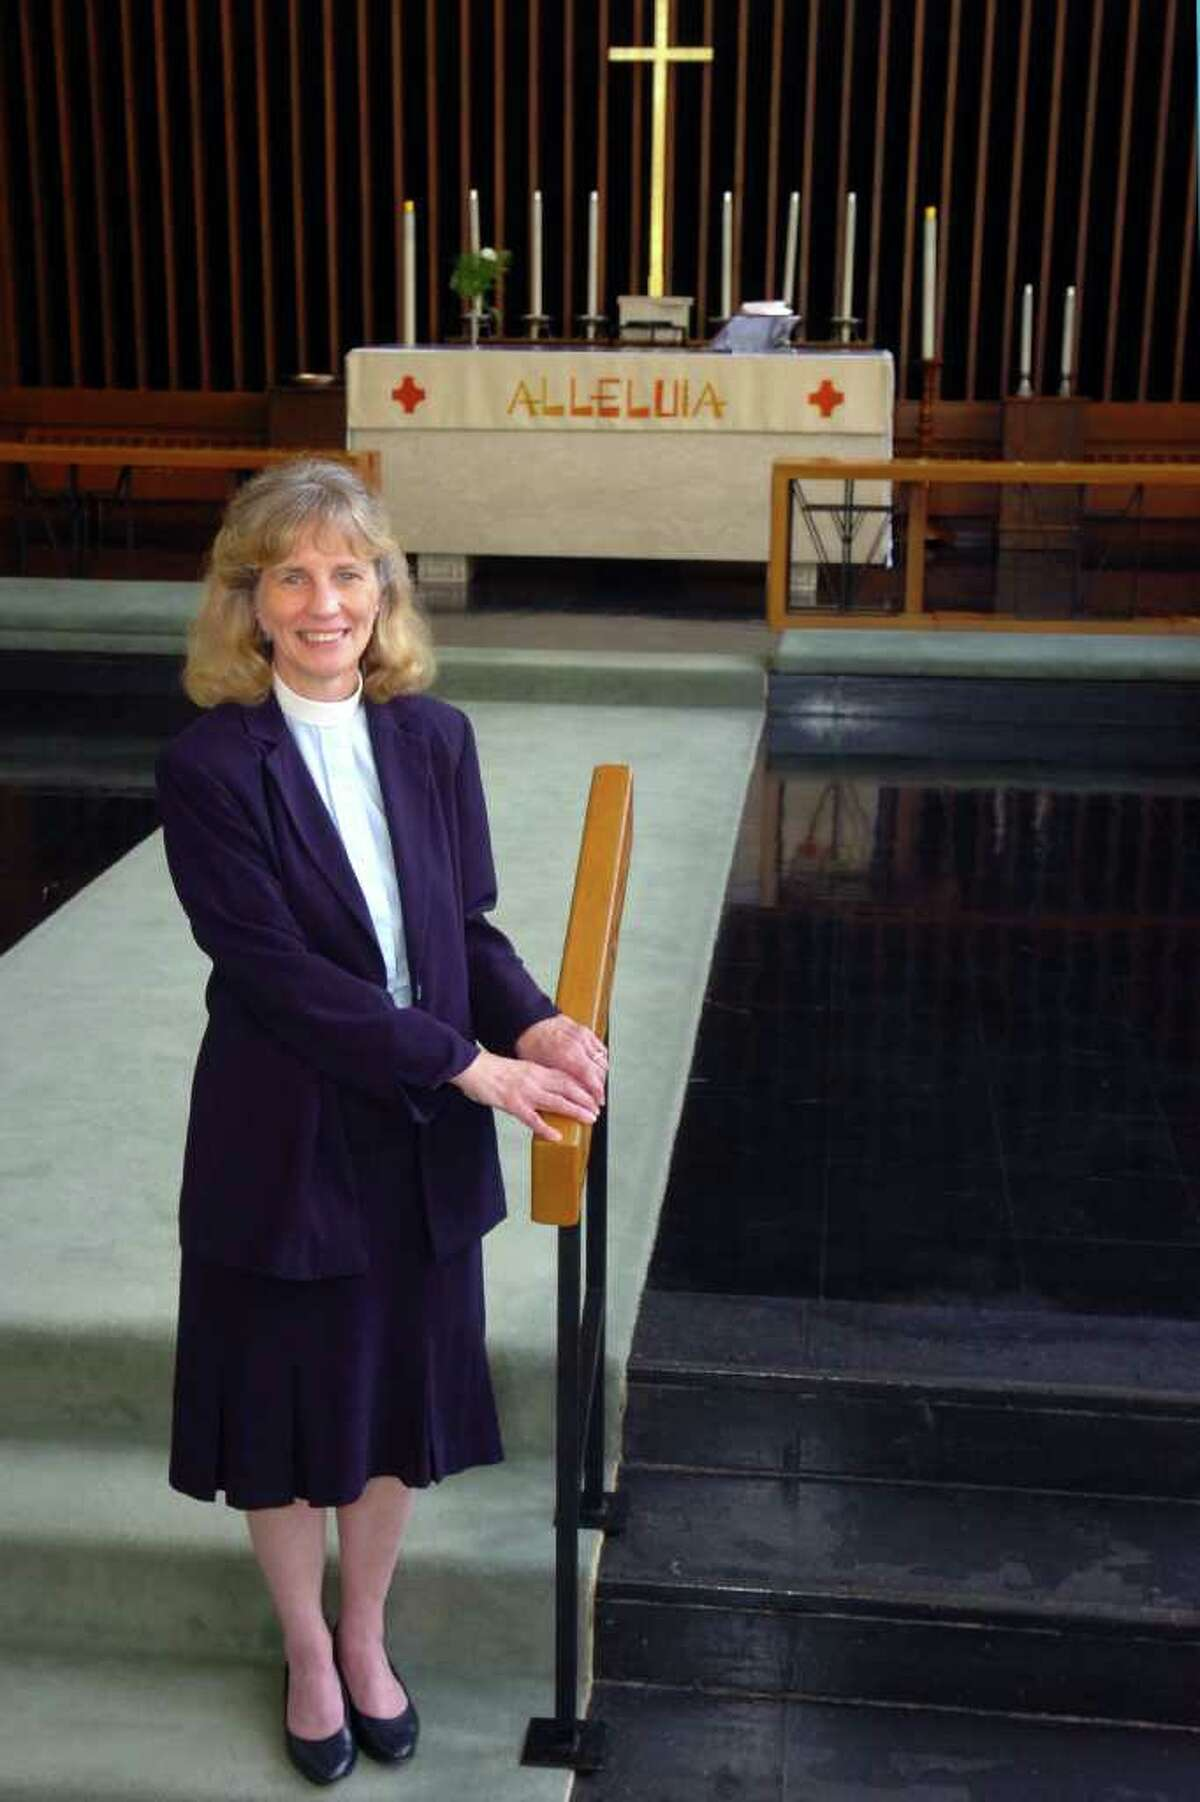 Marjo Anderson is the new pastor at Salem Lutheran Church in Bridgeport, Conn. May 31st, 2011.